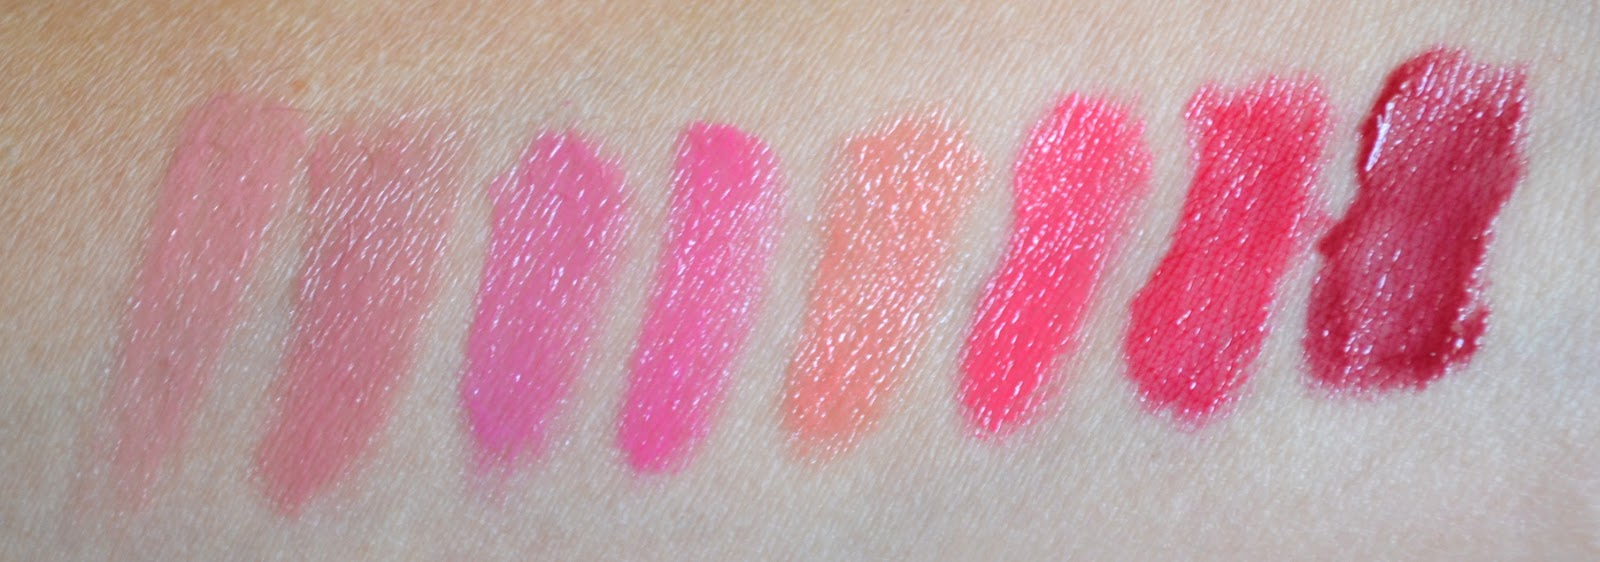 Aquaheart: Worth It? Maybelline Lip Gloss Palette